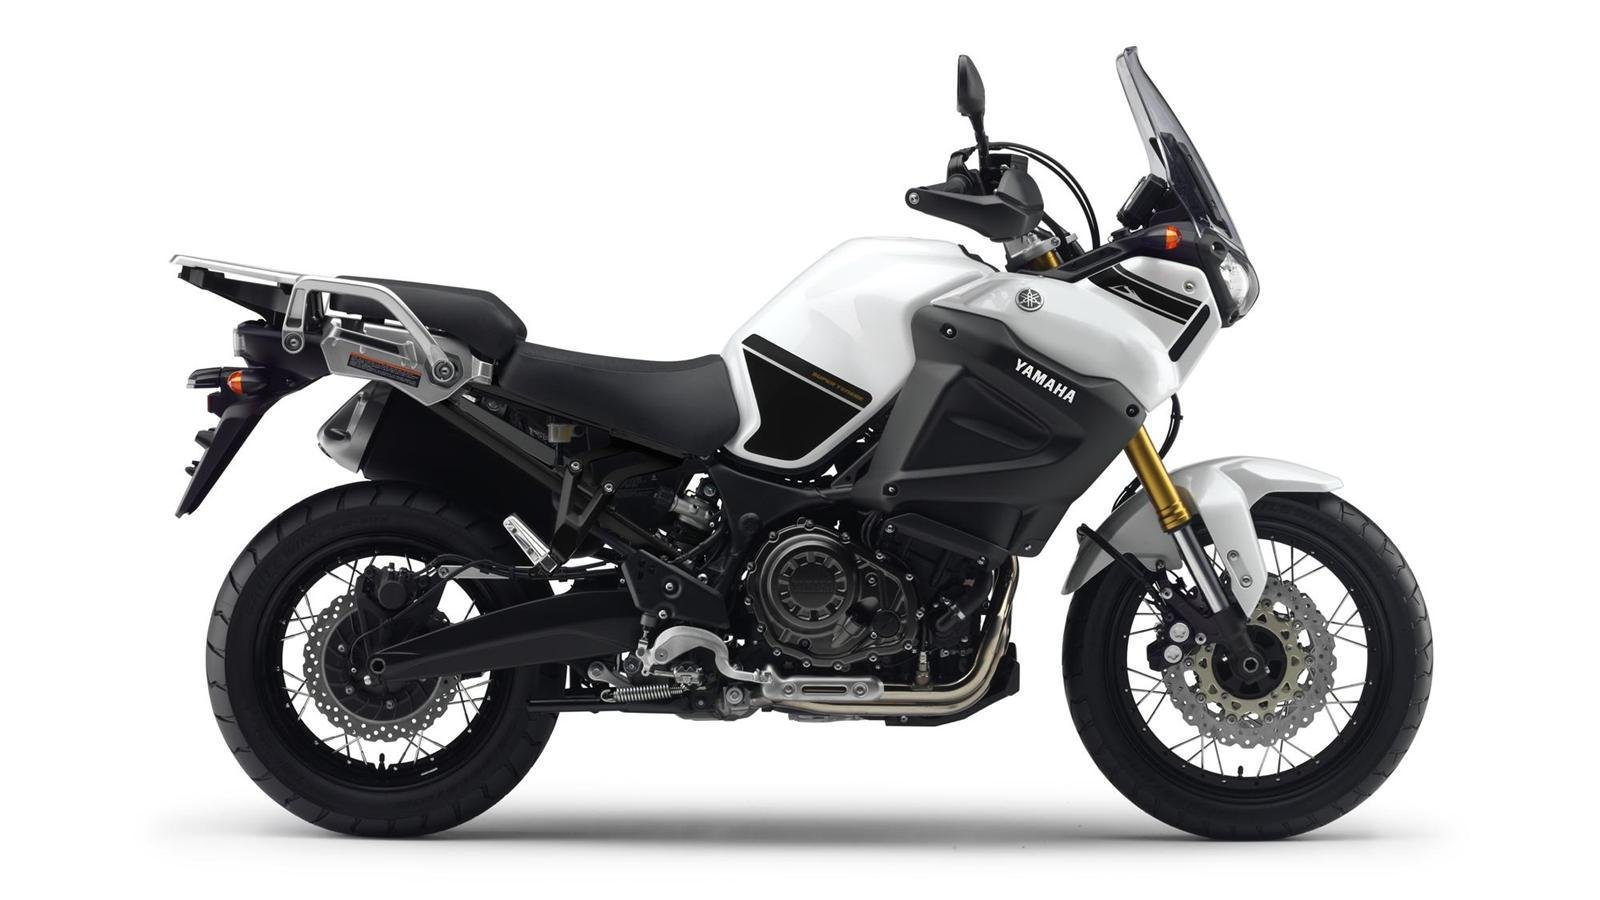 2016 Yamaha Super Tenere Review – Five Things You Should ...